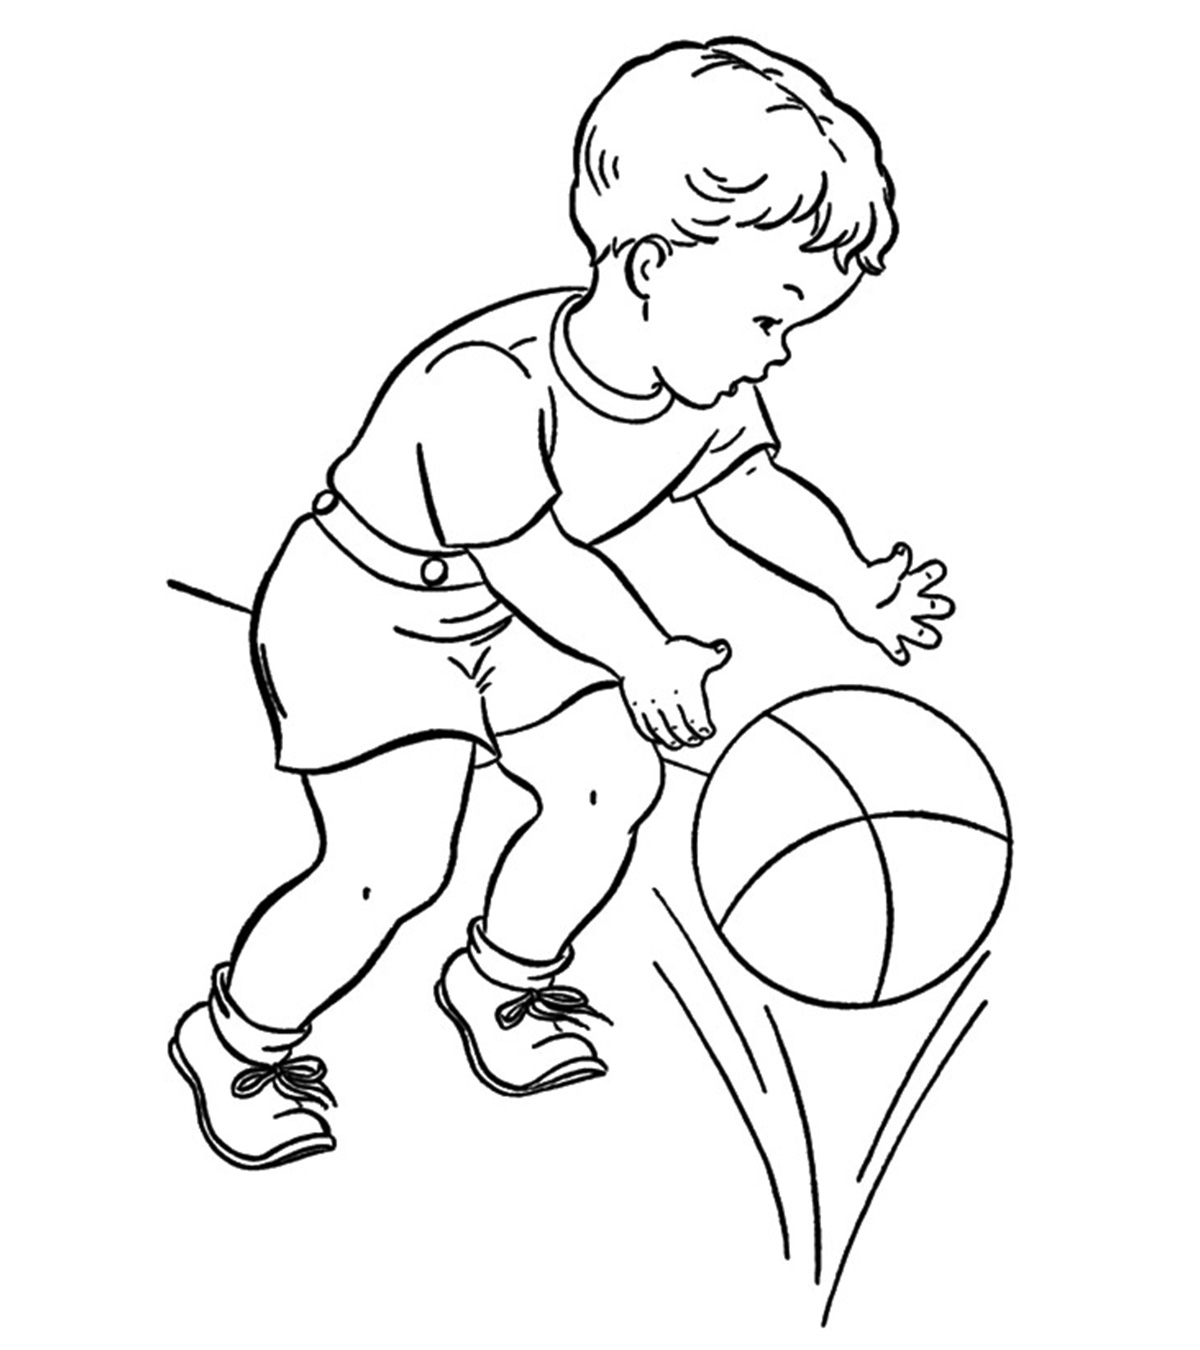 soccer coloring pages - Google Search | Sports coloring pages, Football  coloring pages, Coloring pages | 1350x1200